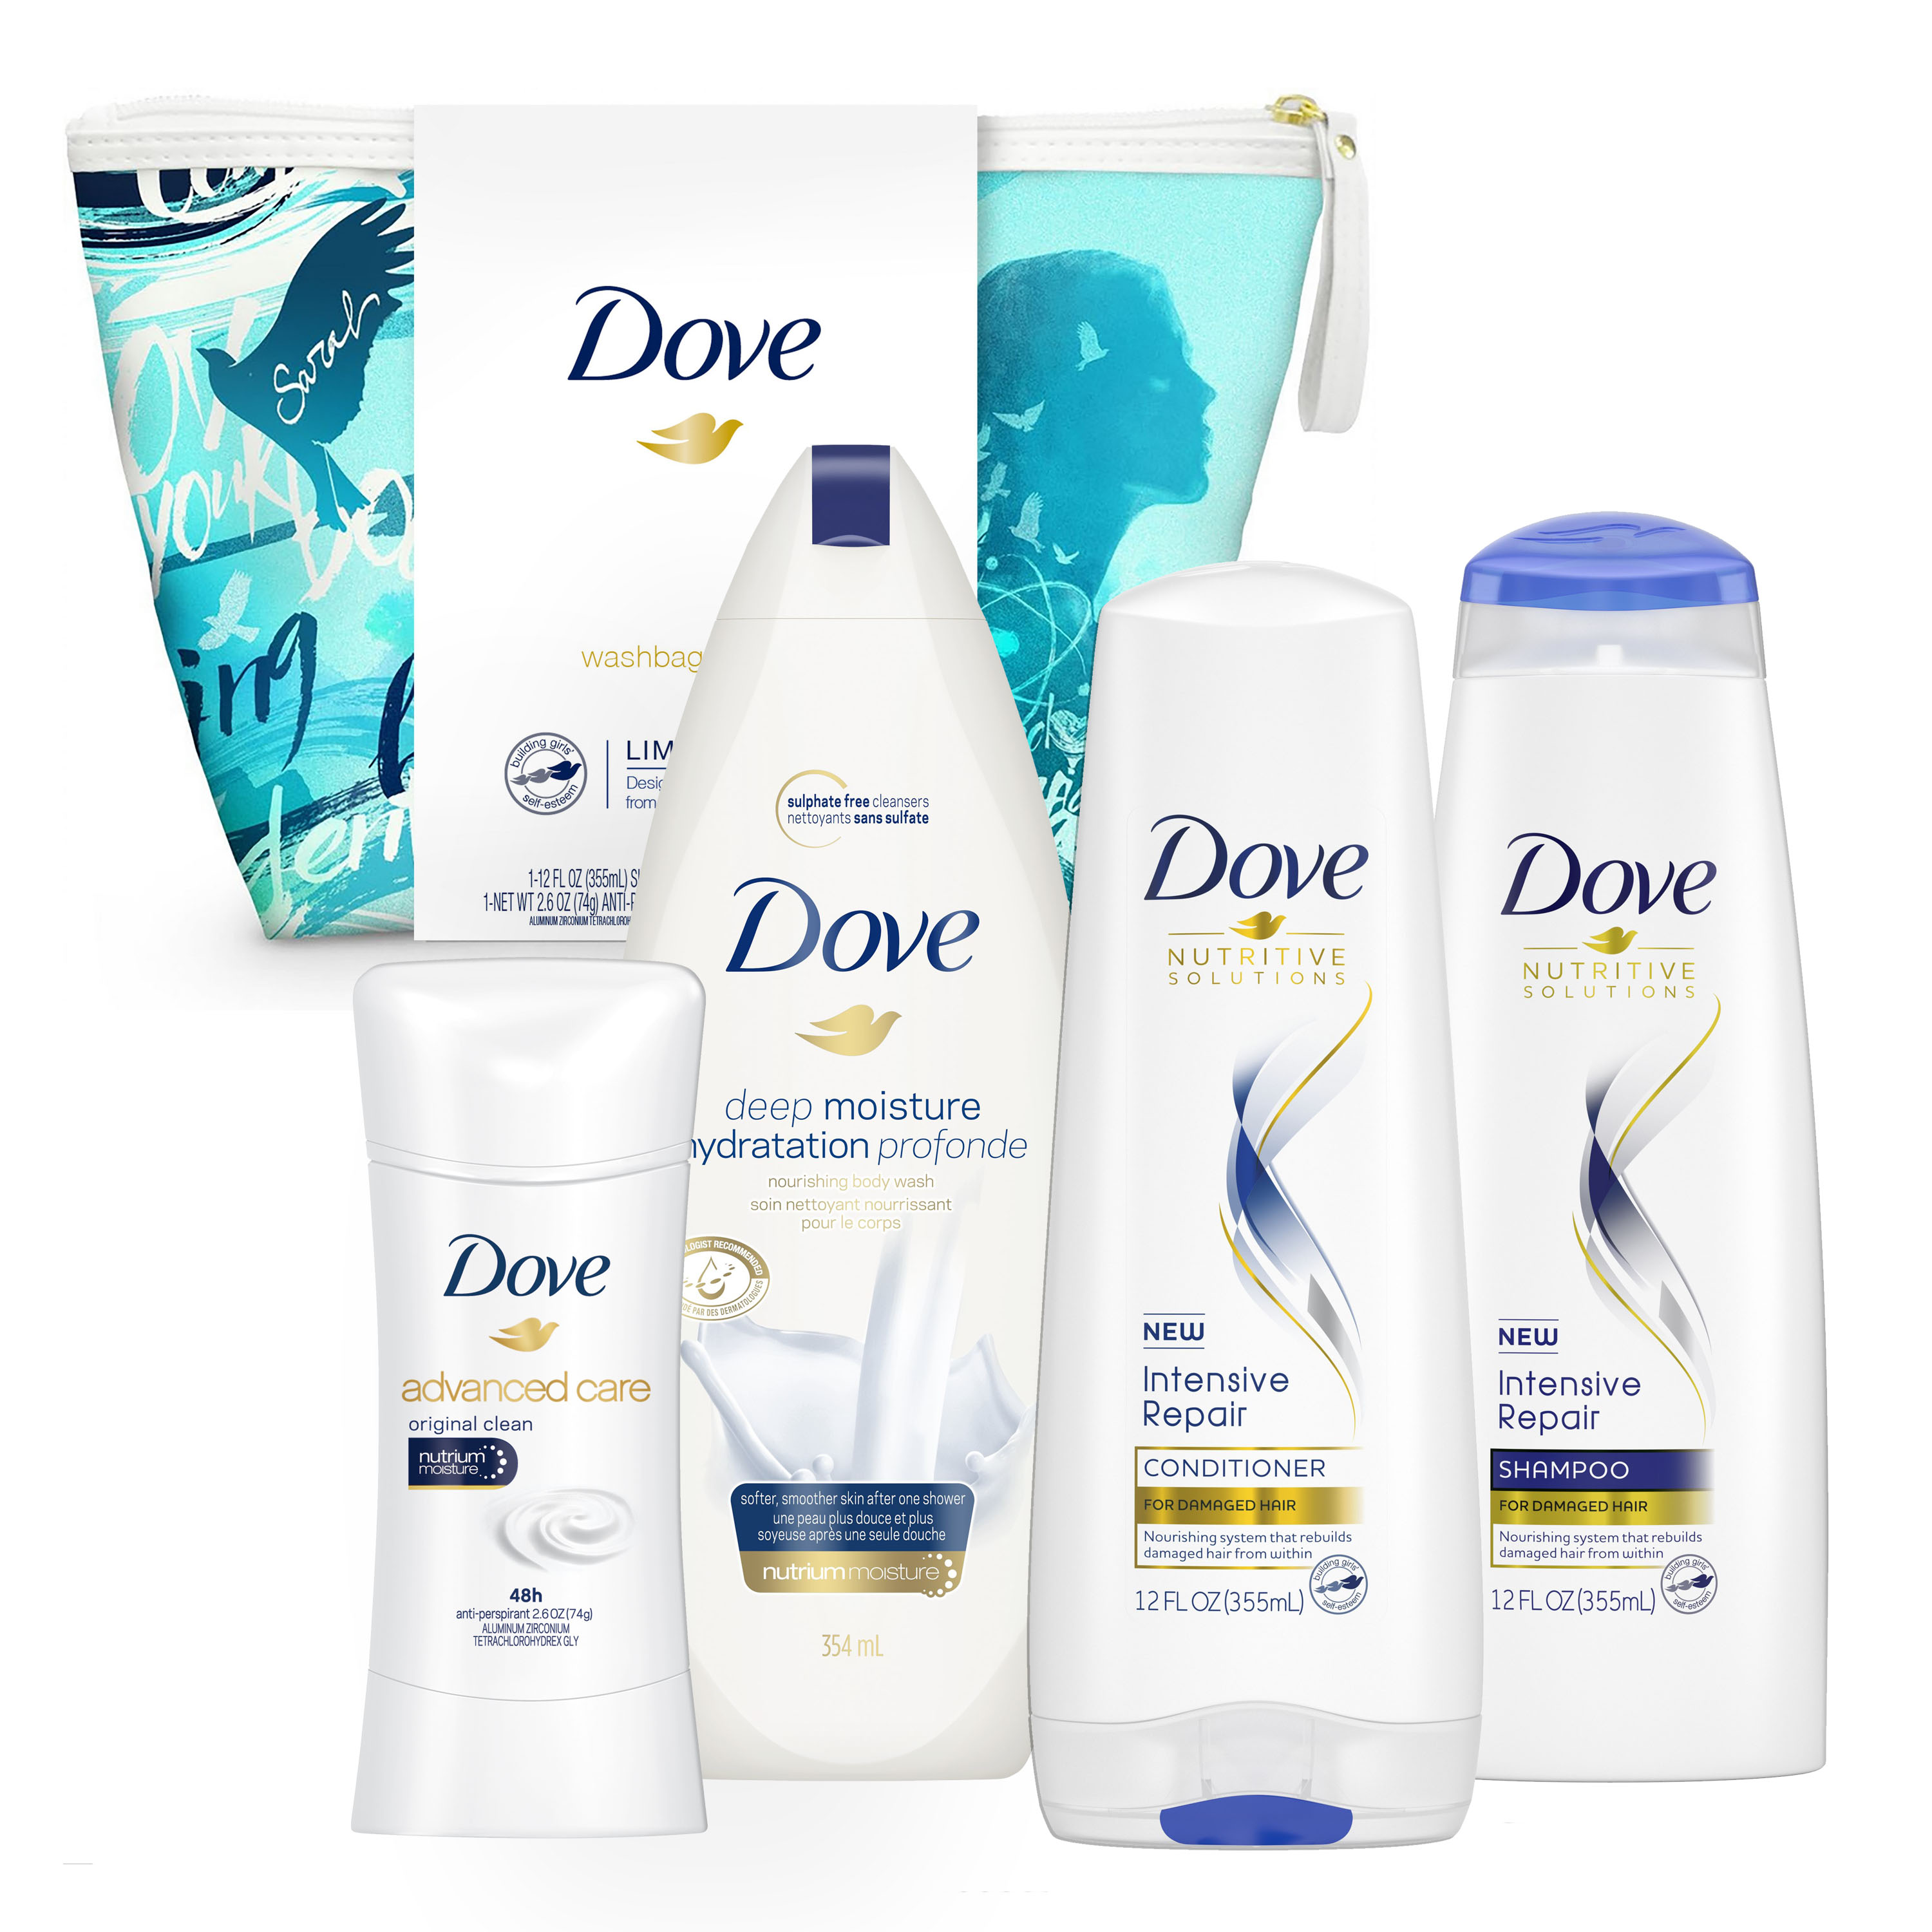 ($26 Value) Dove 5-pc Self-Esteem Project Sarah Holiday Gift Set (Shampoo, Conditioner, Deodorant, Bodywash with Bonus Pouf)